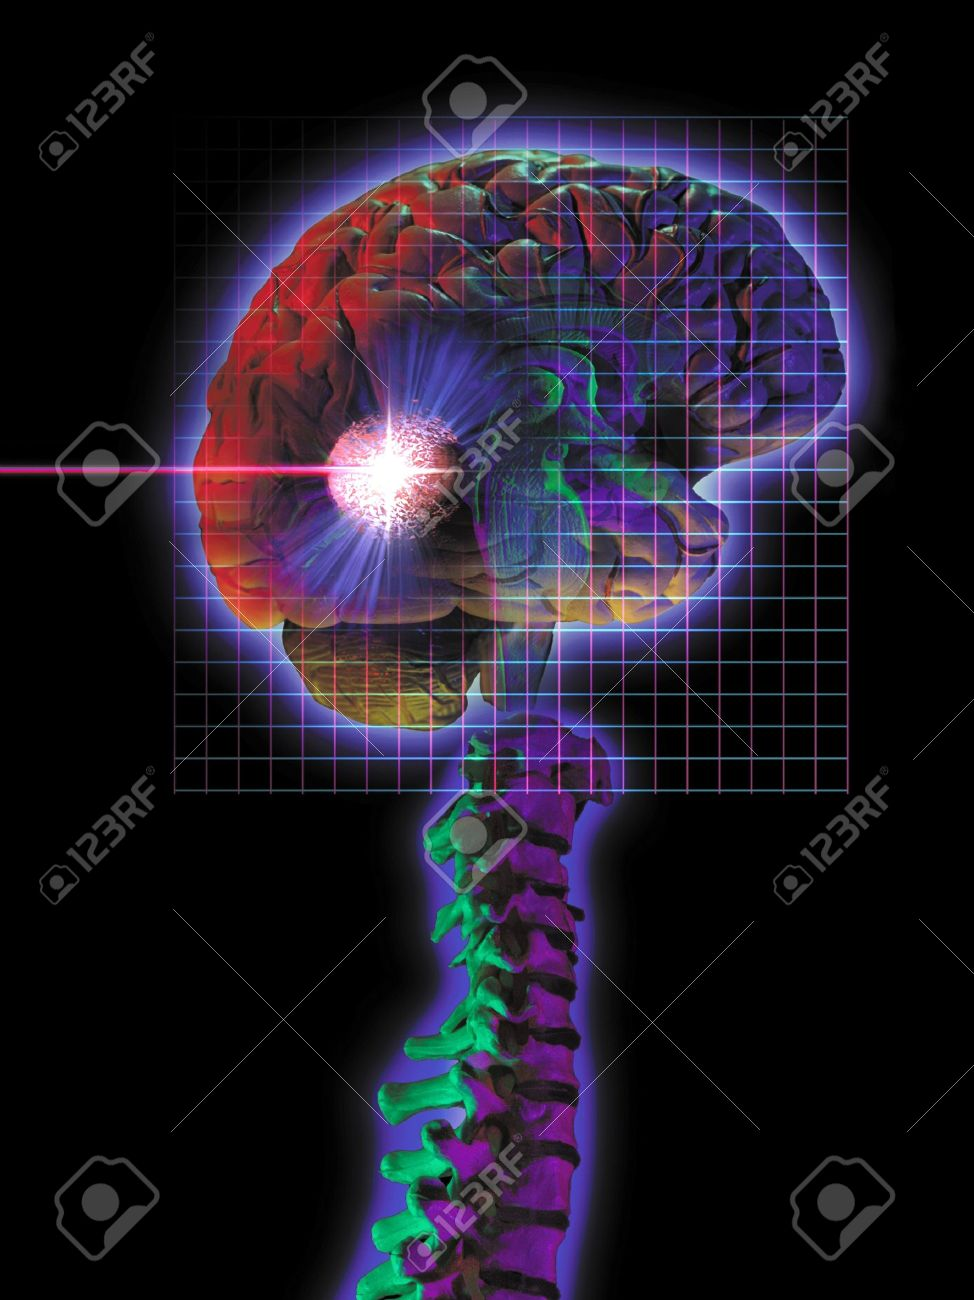 Diamgram of Radiosurgery being performed. Stock Photo - 15442283